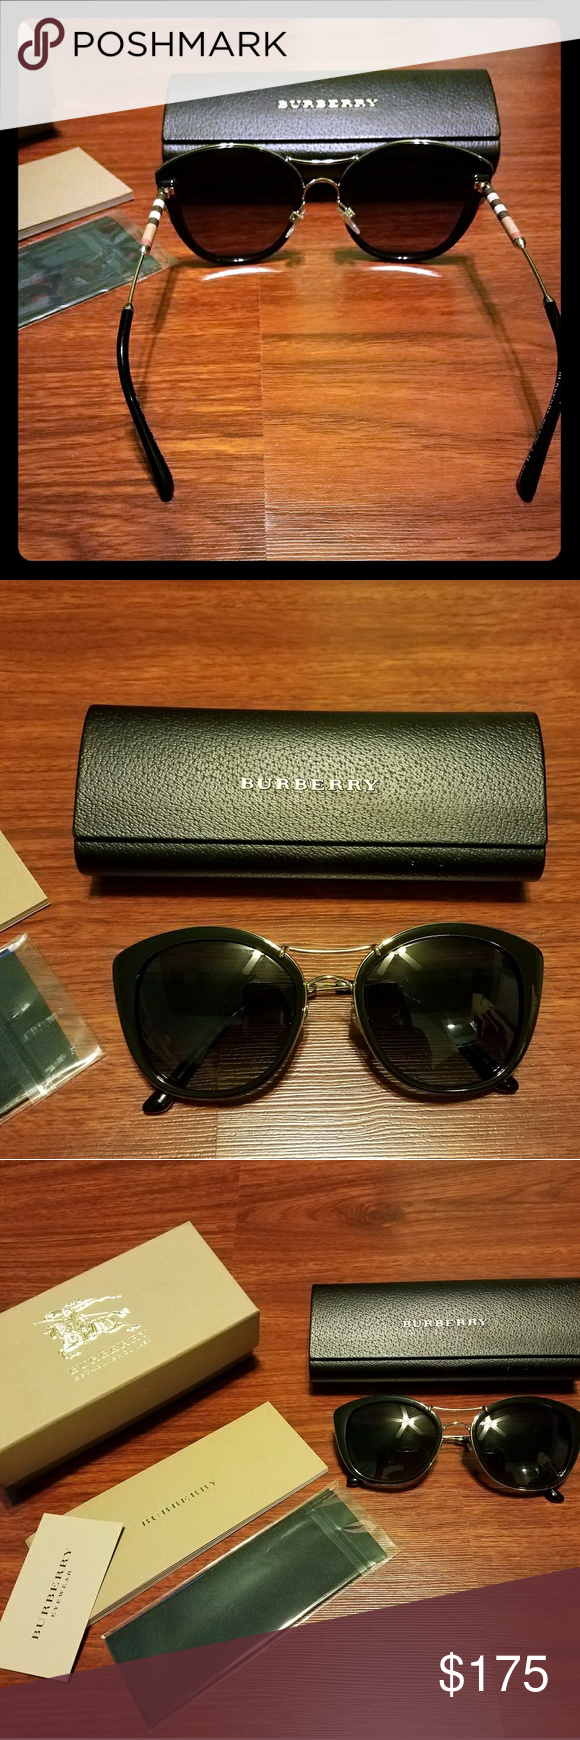 2bbd61566d4 Burberry Eyewear 4251 q Excellent condition worn once no scratches like new Burberry  Accessories Sunglasses